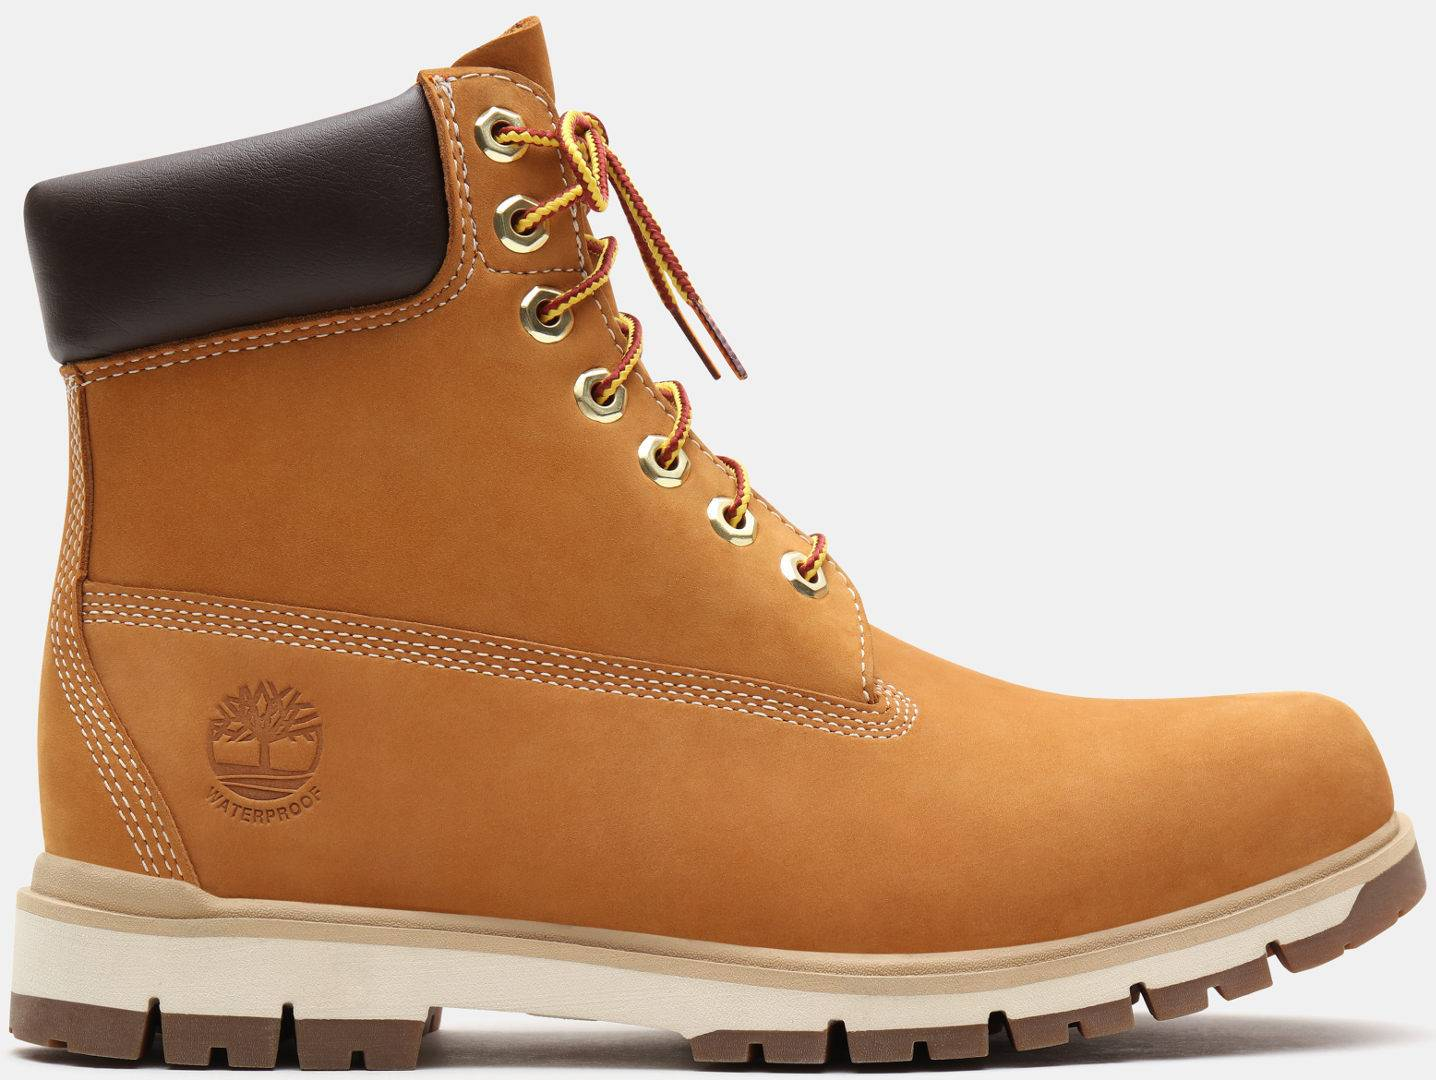 Timberland Radford 6 Inch Boots  - Size: 47 48